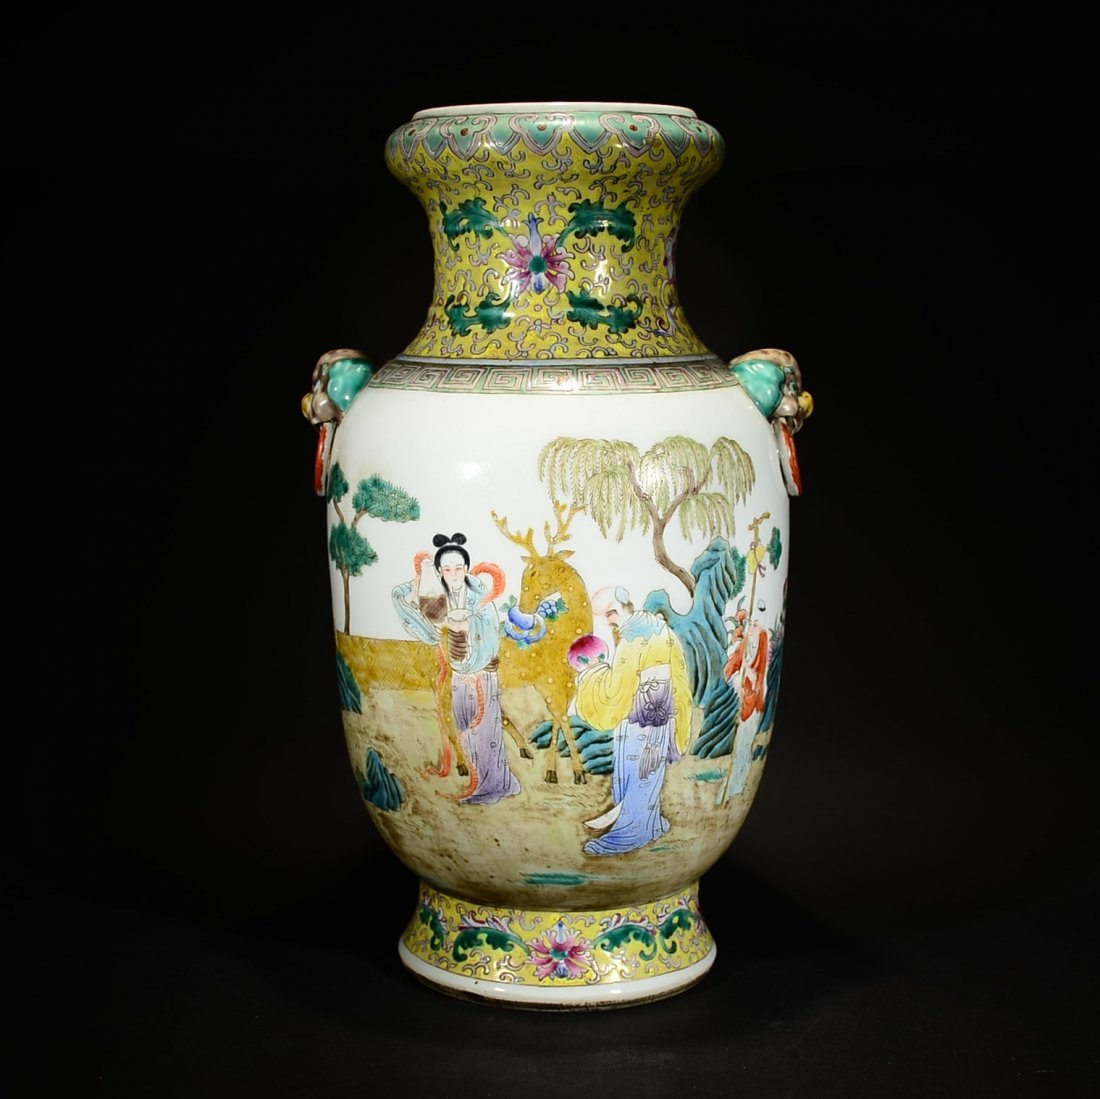 QING D., A FAMILLE ROSE VASE WITH LOOP